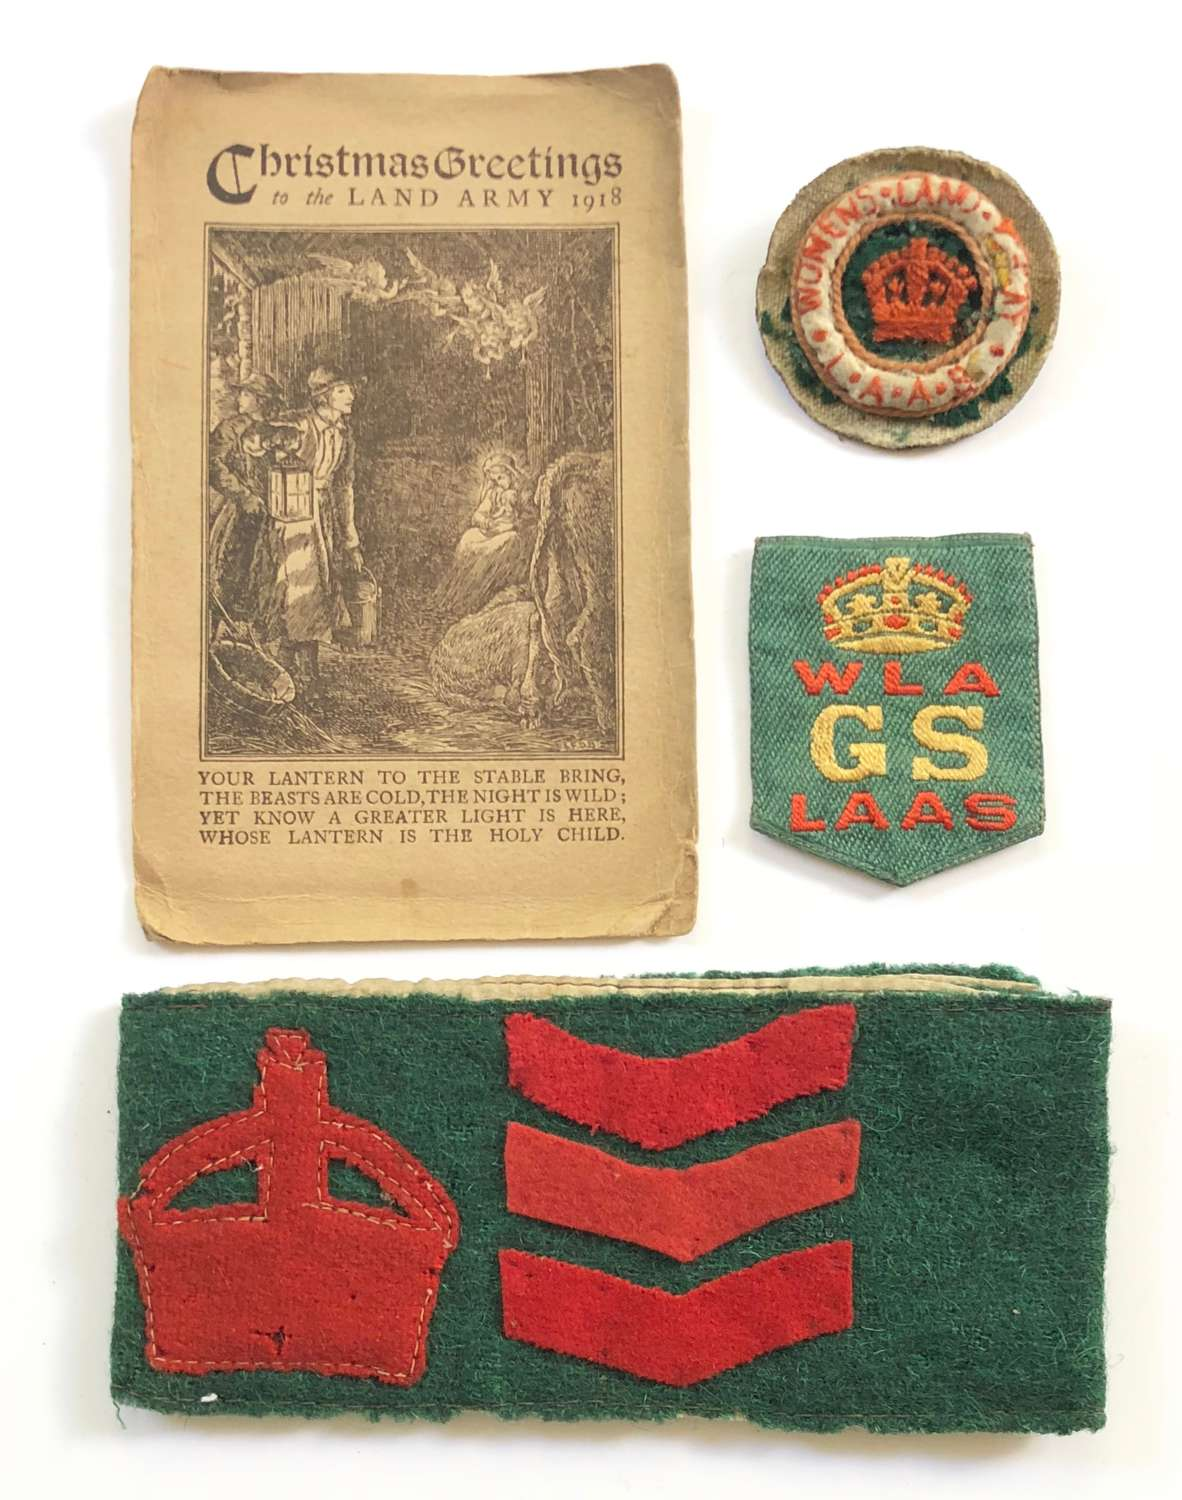 WW1 Women's Land Army Attributed Badges etc.